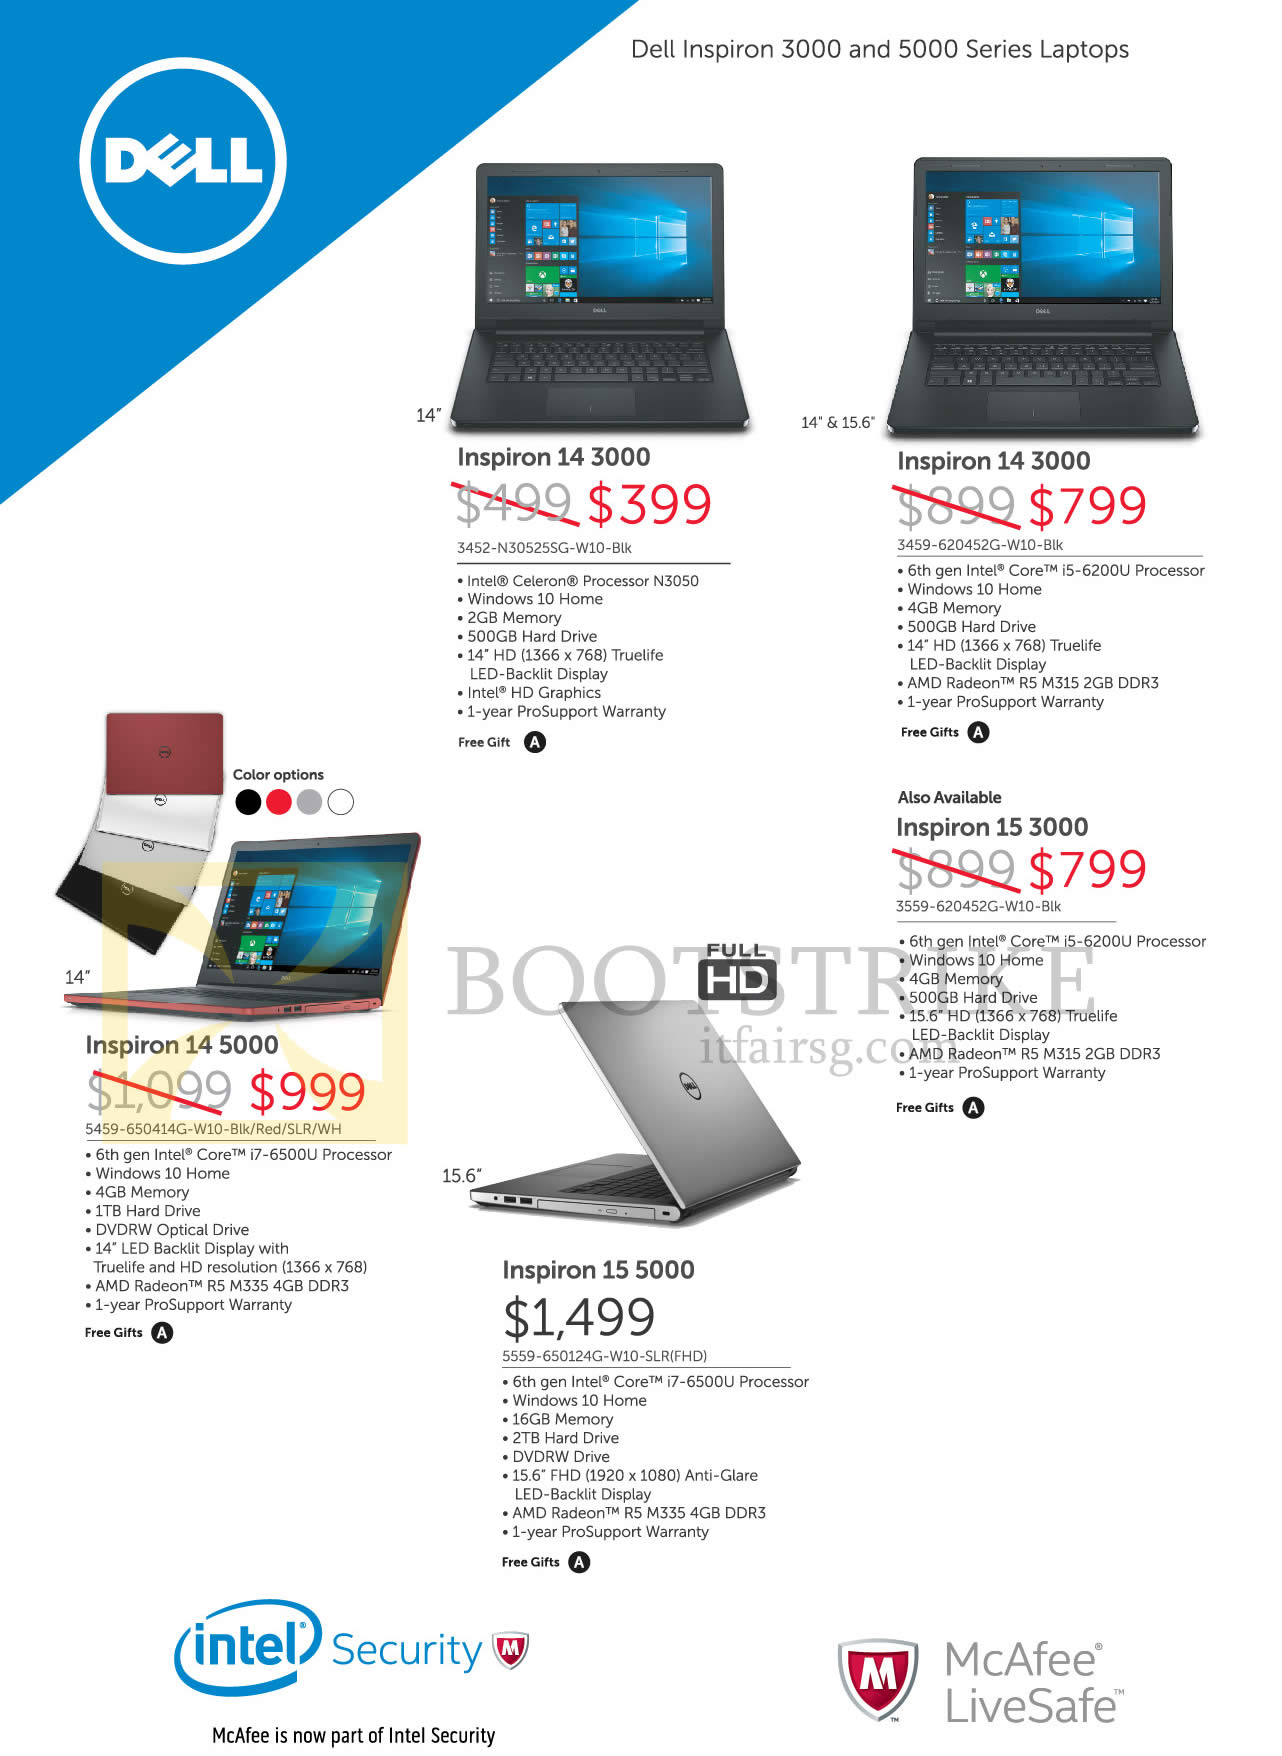 COMEX 2016 price list image brochure of Dell Notebooks Inspiron 14 3000, 14 5000, 15 3000, 15 5000 Series